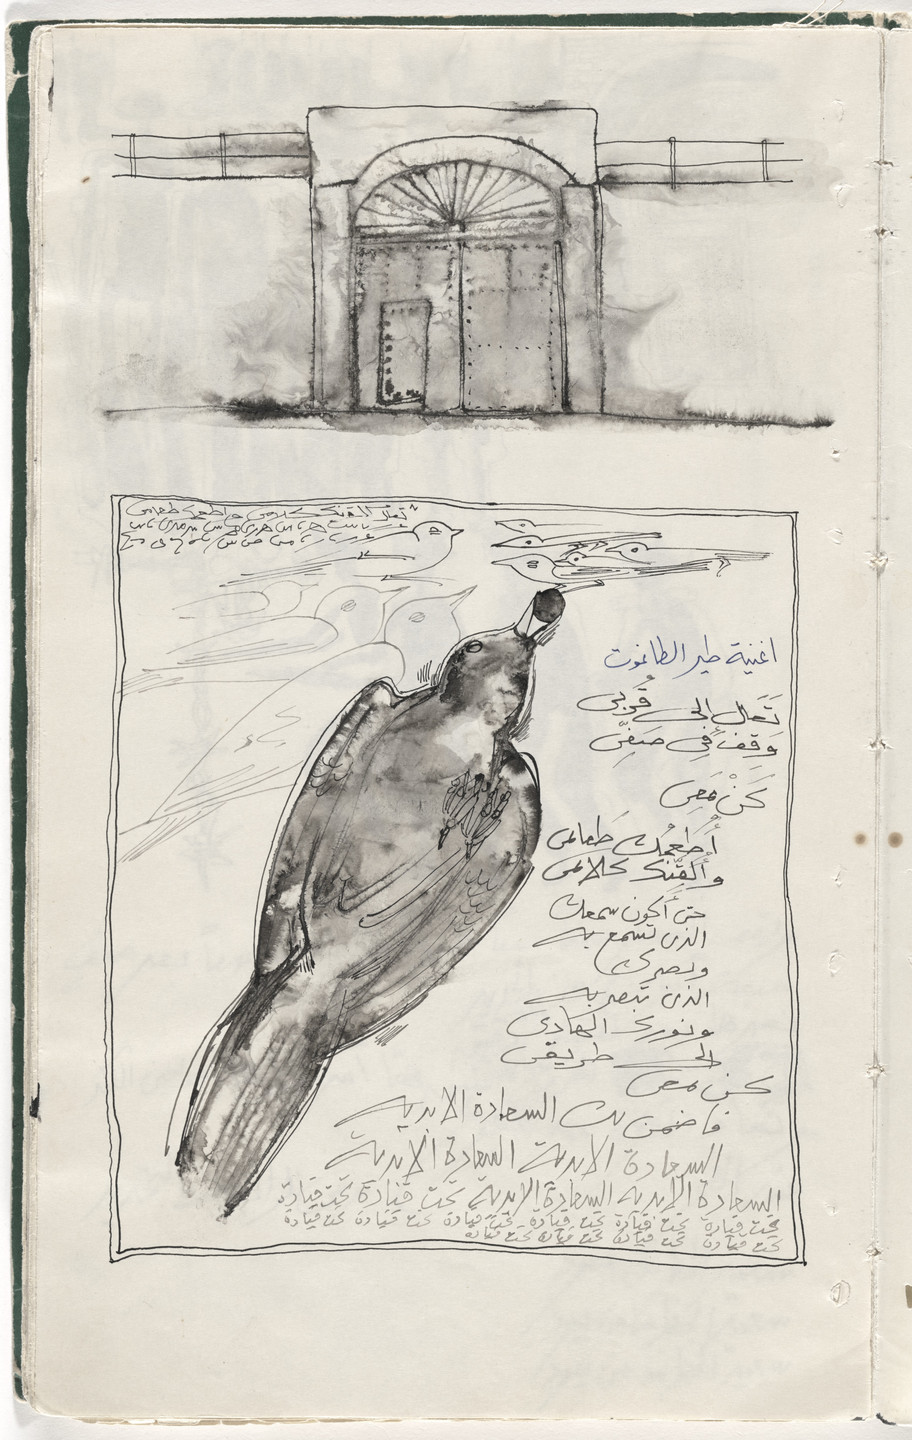 Ibrahim El-Salahi. The Song of the Tyrant's Bird from Prison Notebook. 1976